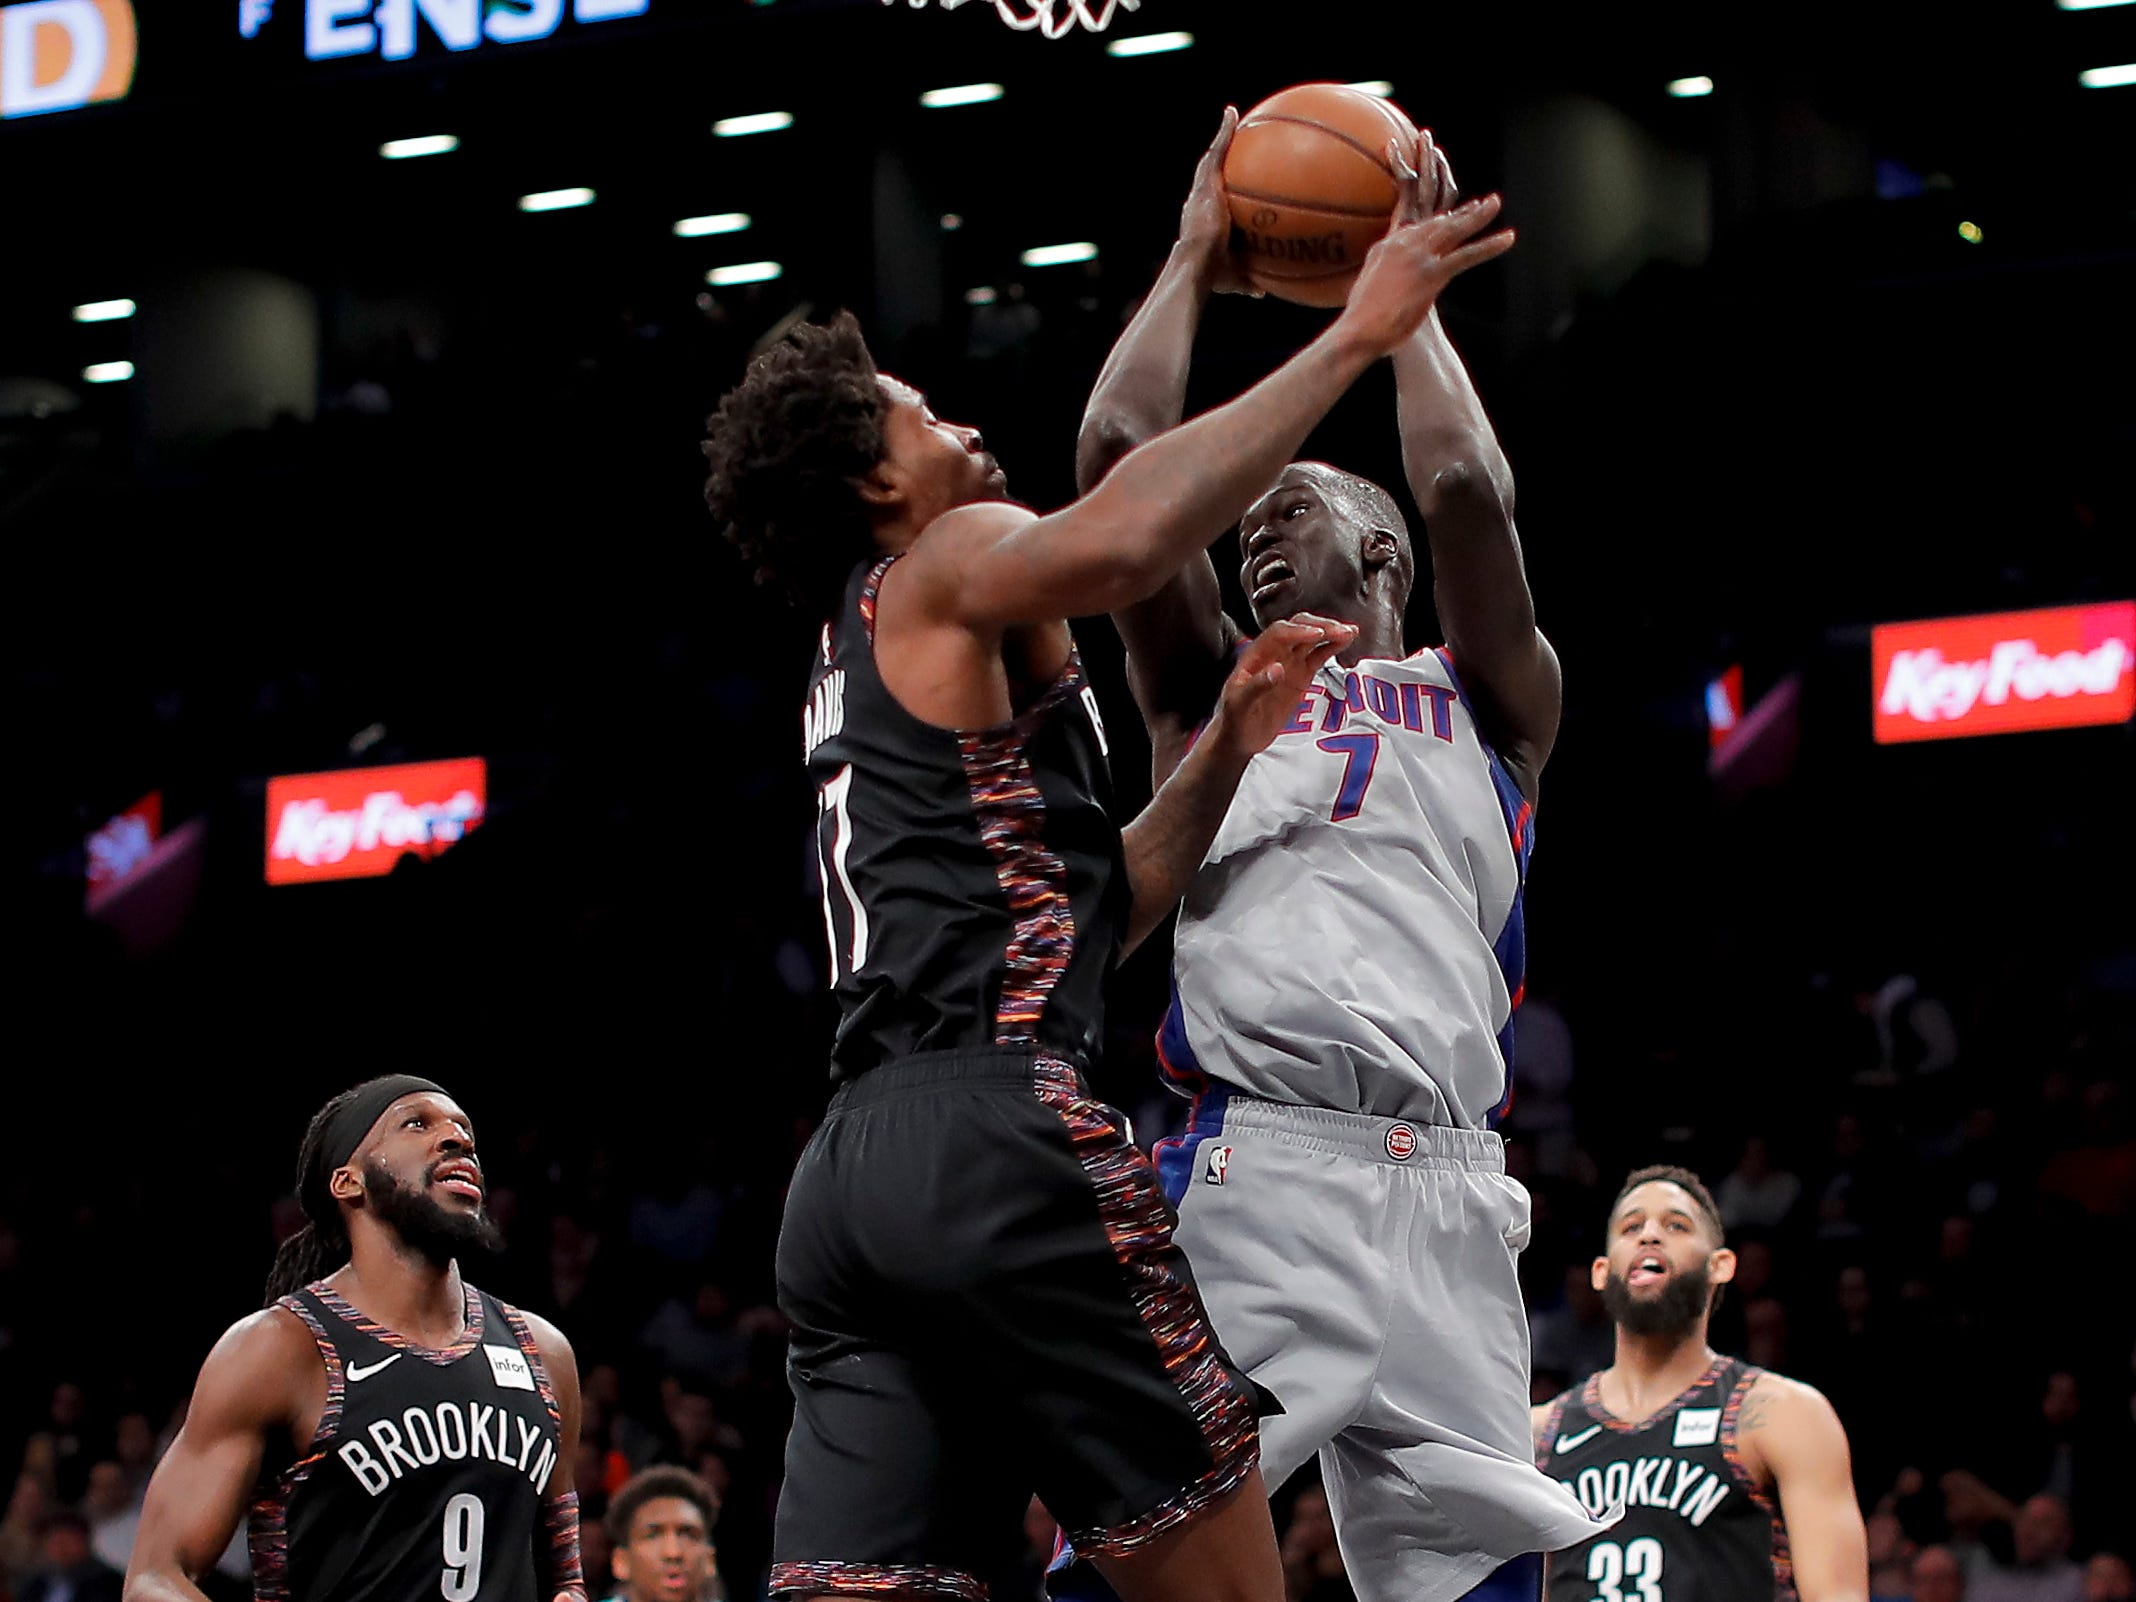 Detroit Pistons forward Thon Maker (7) looks to pass against Brooklyn Nets forward Ed Davis (17) during the second quarter.